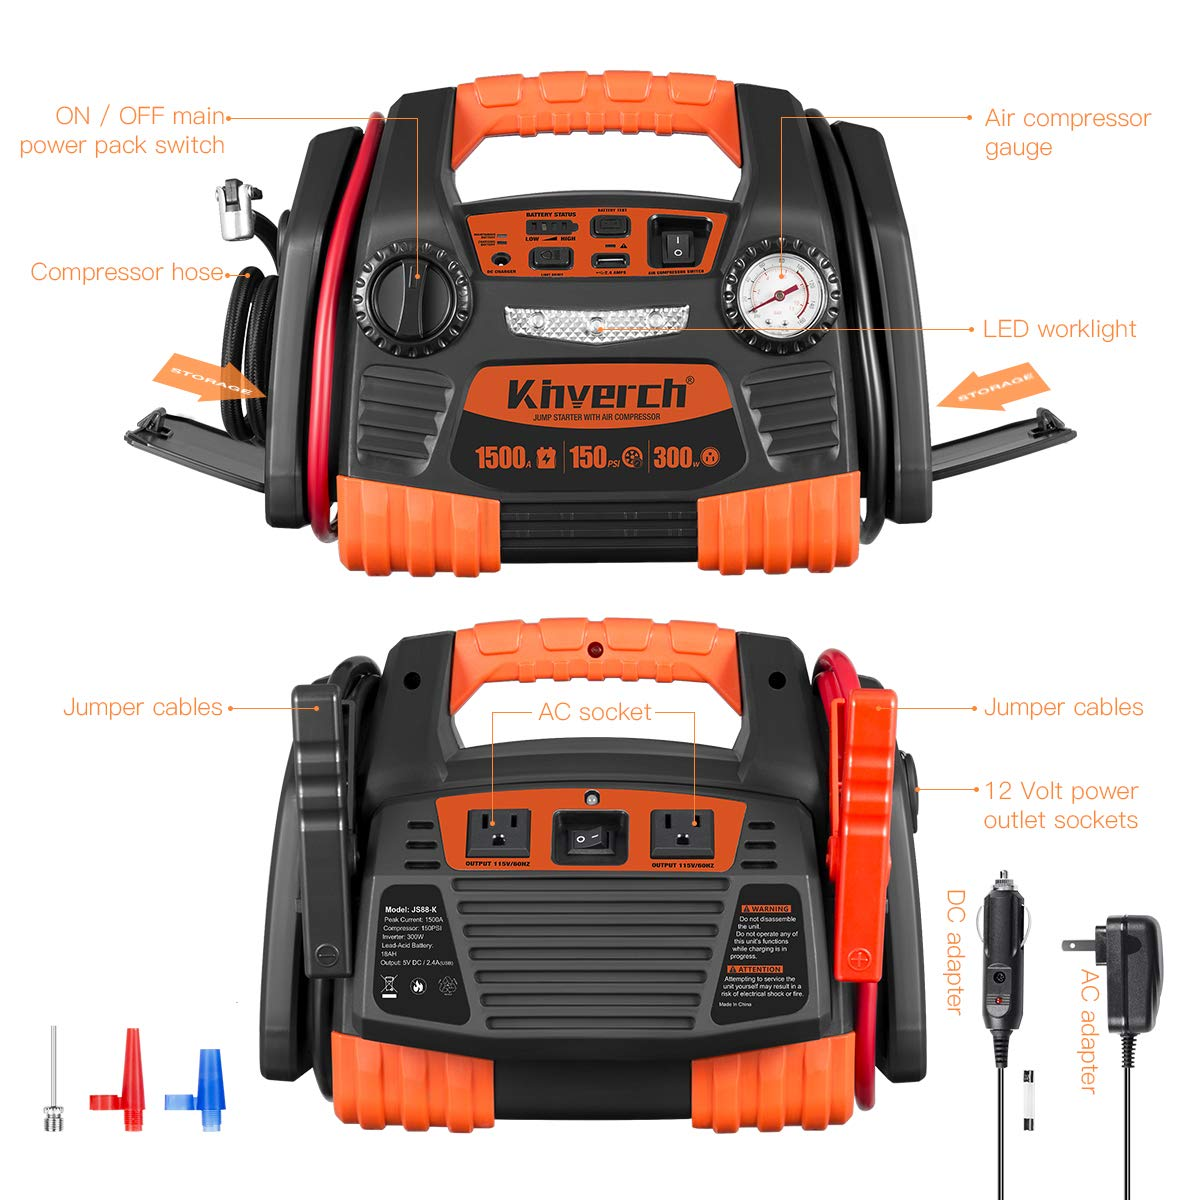 Amazon.com: Kinverch Portable Power Station Jump Starter 1500 Peak/750 Instant Amps with 300W Inverter,150 PSI Air Compressor: Automotive